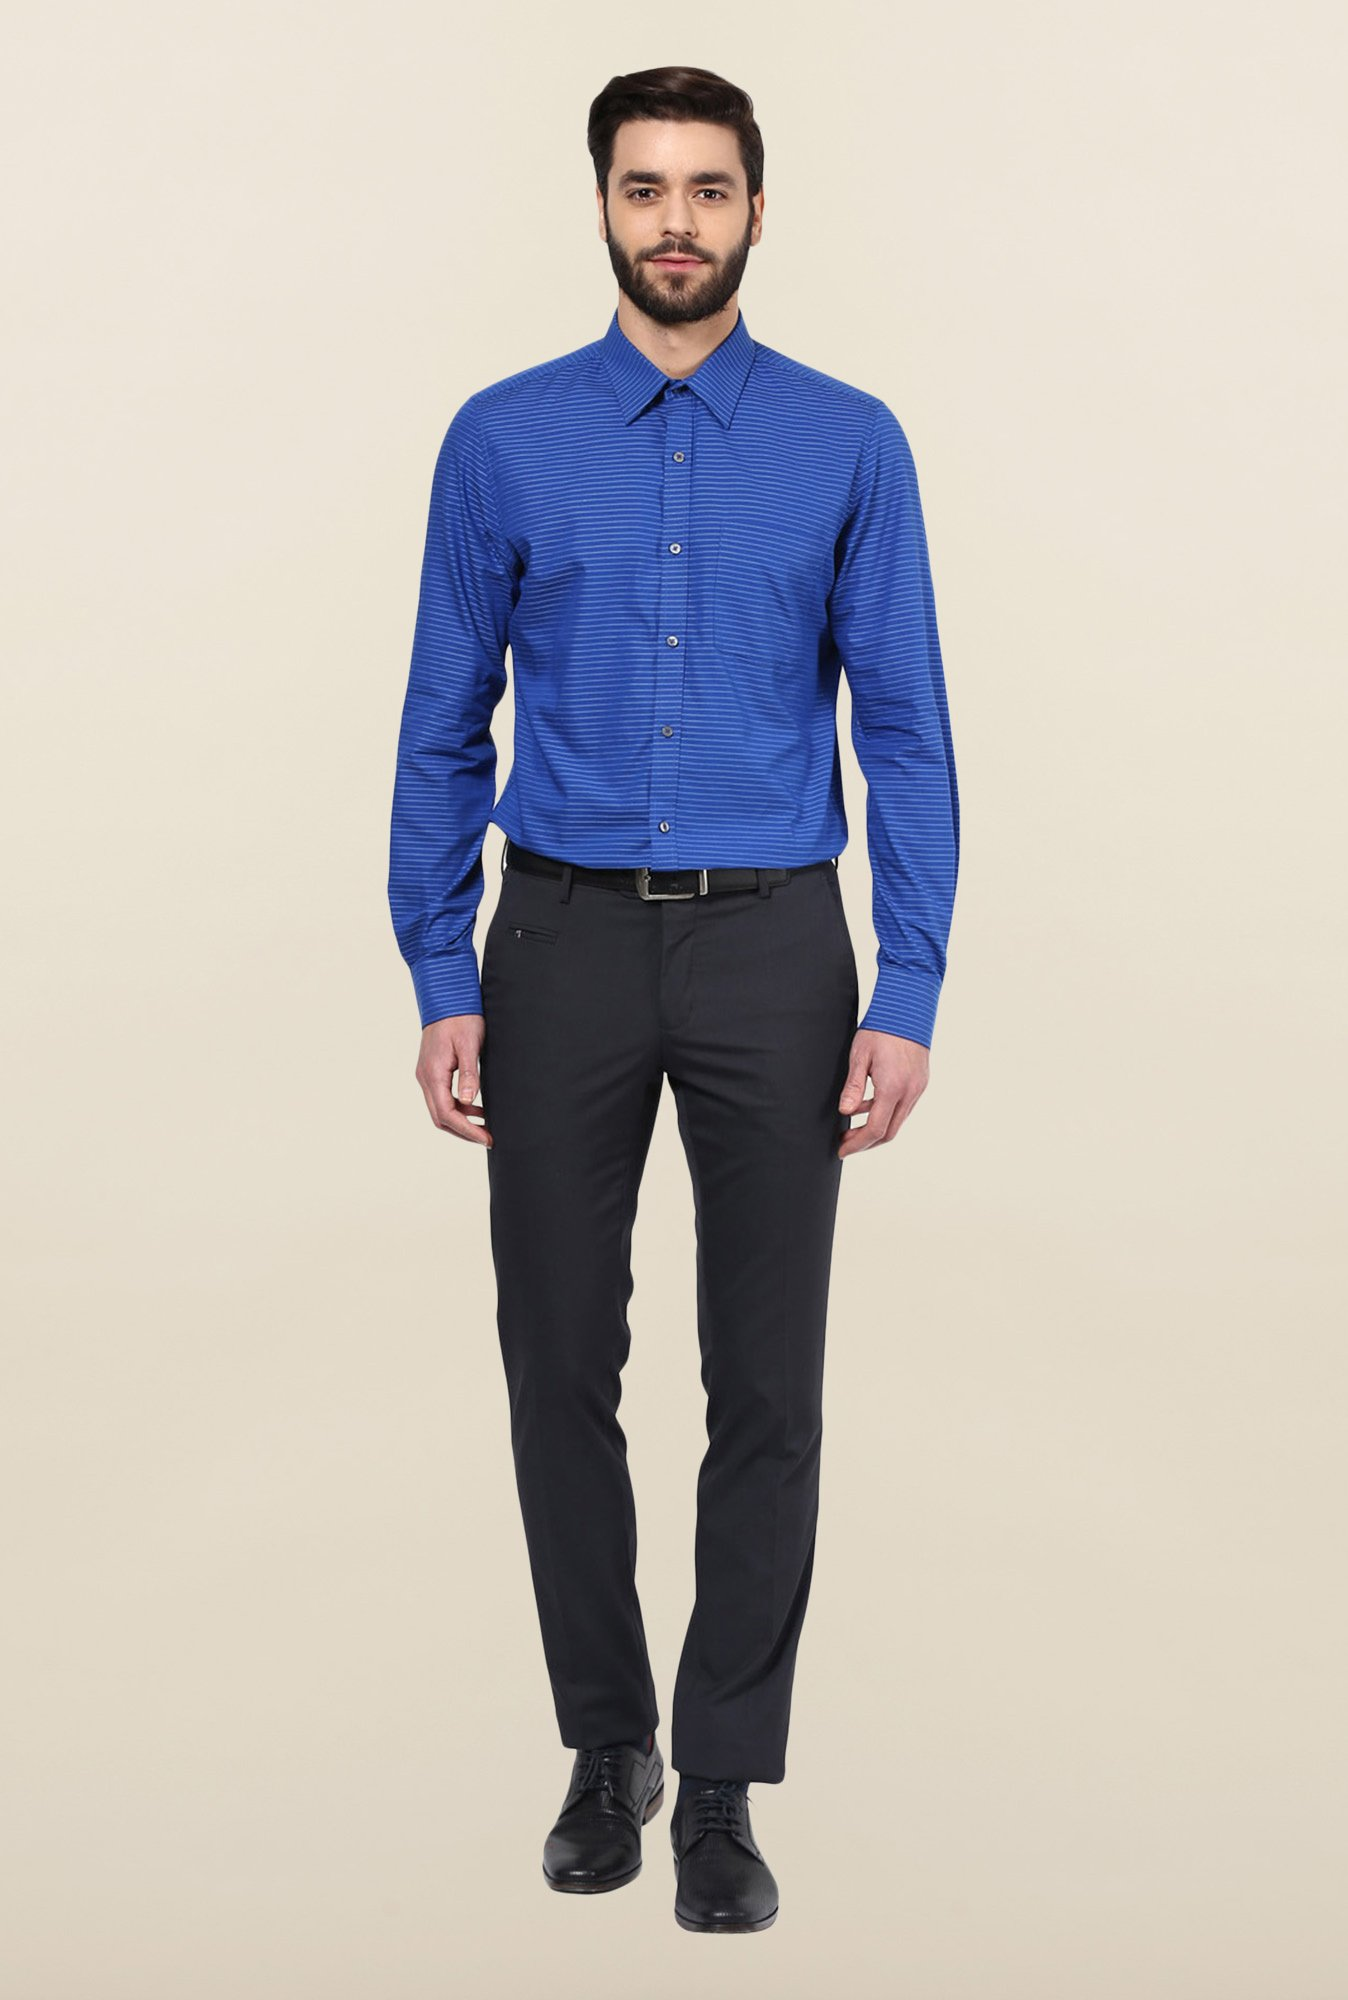 Turtle Blue Cotton Formal Shirt